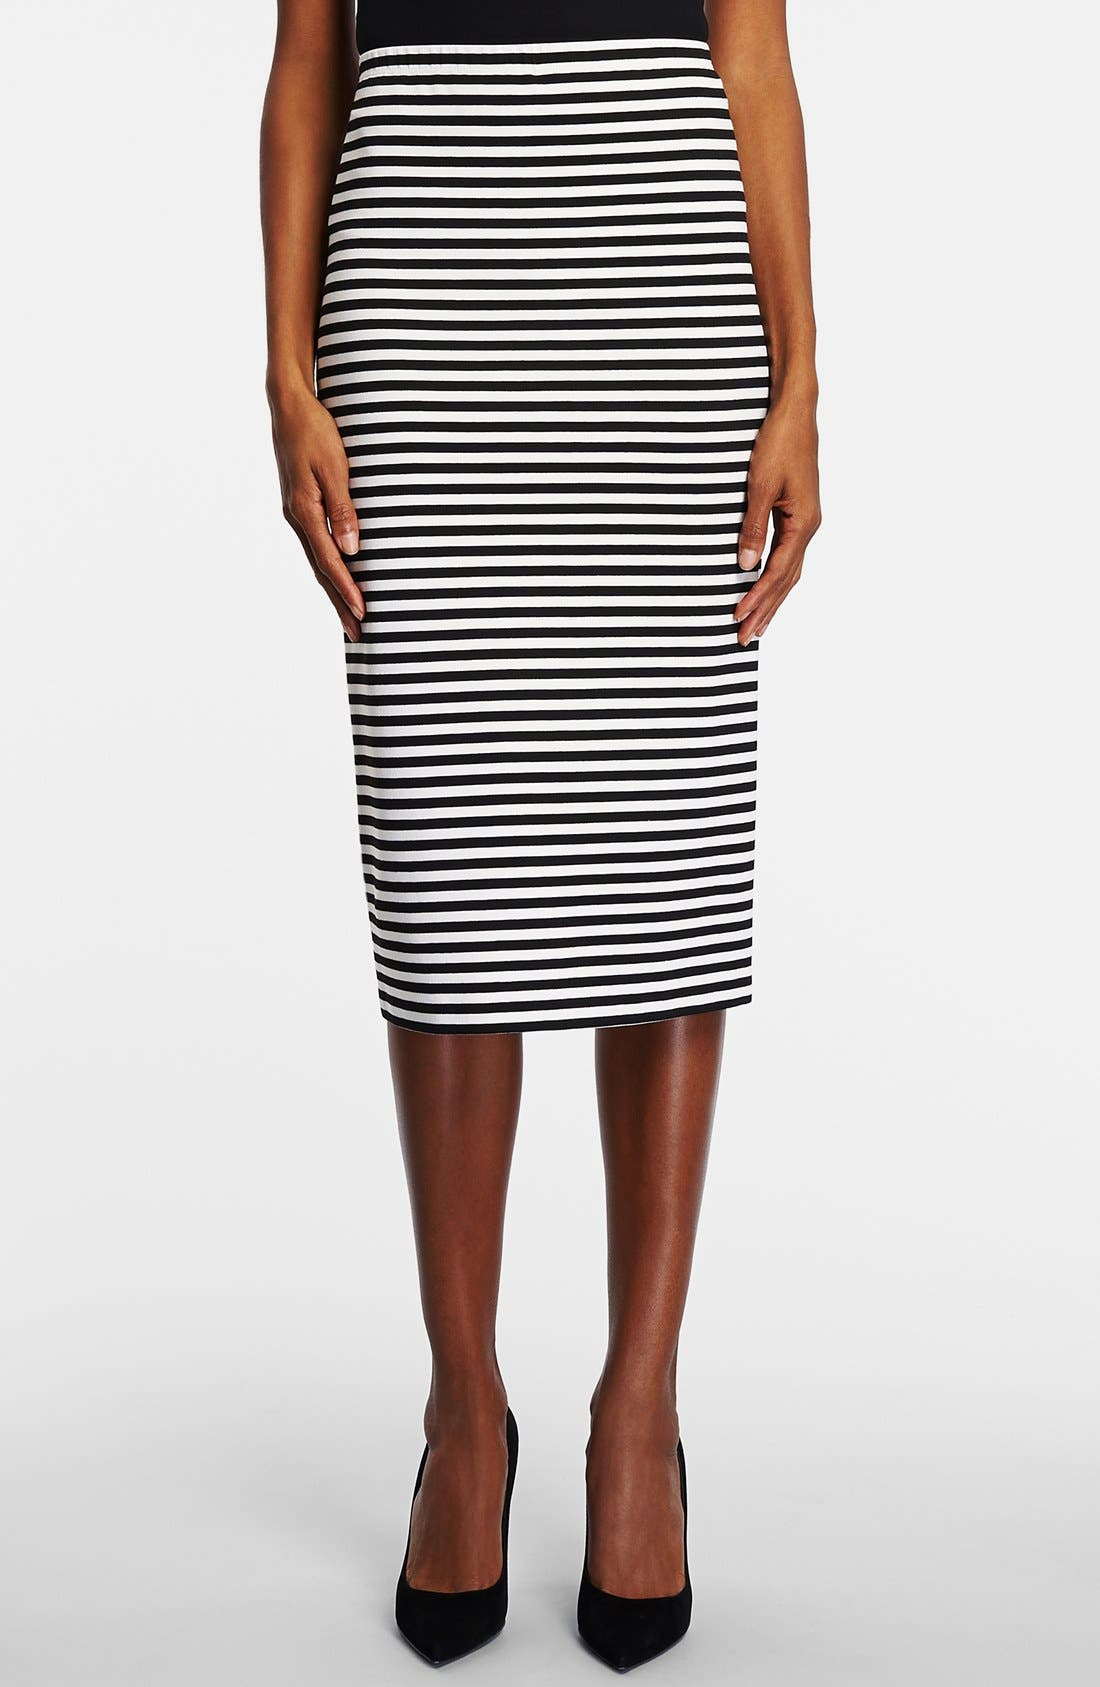 Alternate Image 1 Selected - Lafayette 148 New York Stripe Stretch Knit Long Pencil Skirt